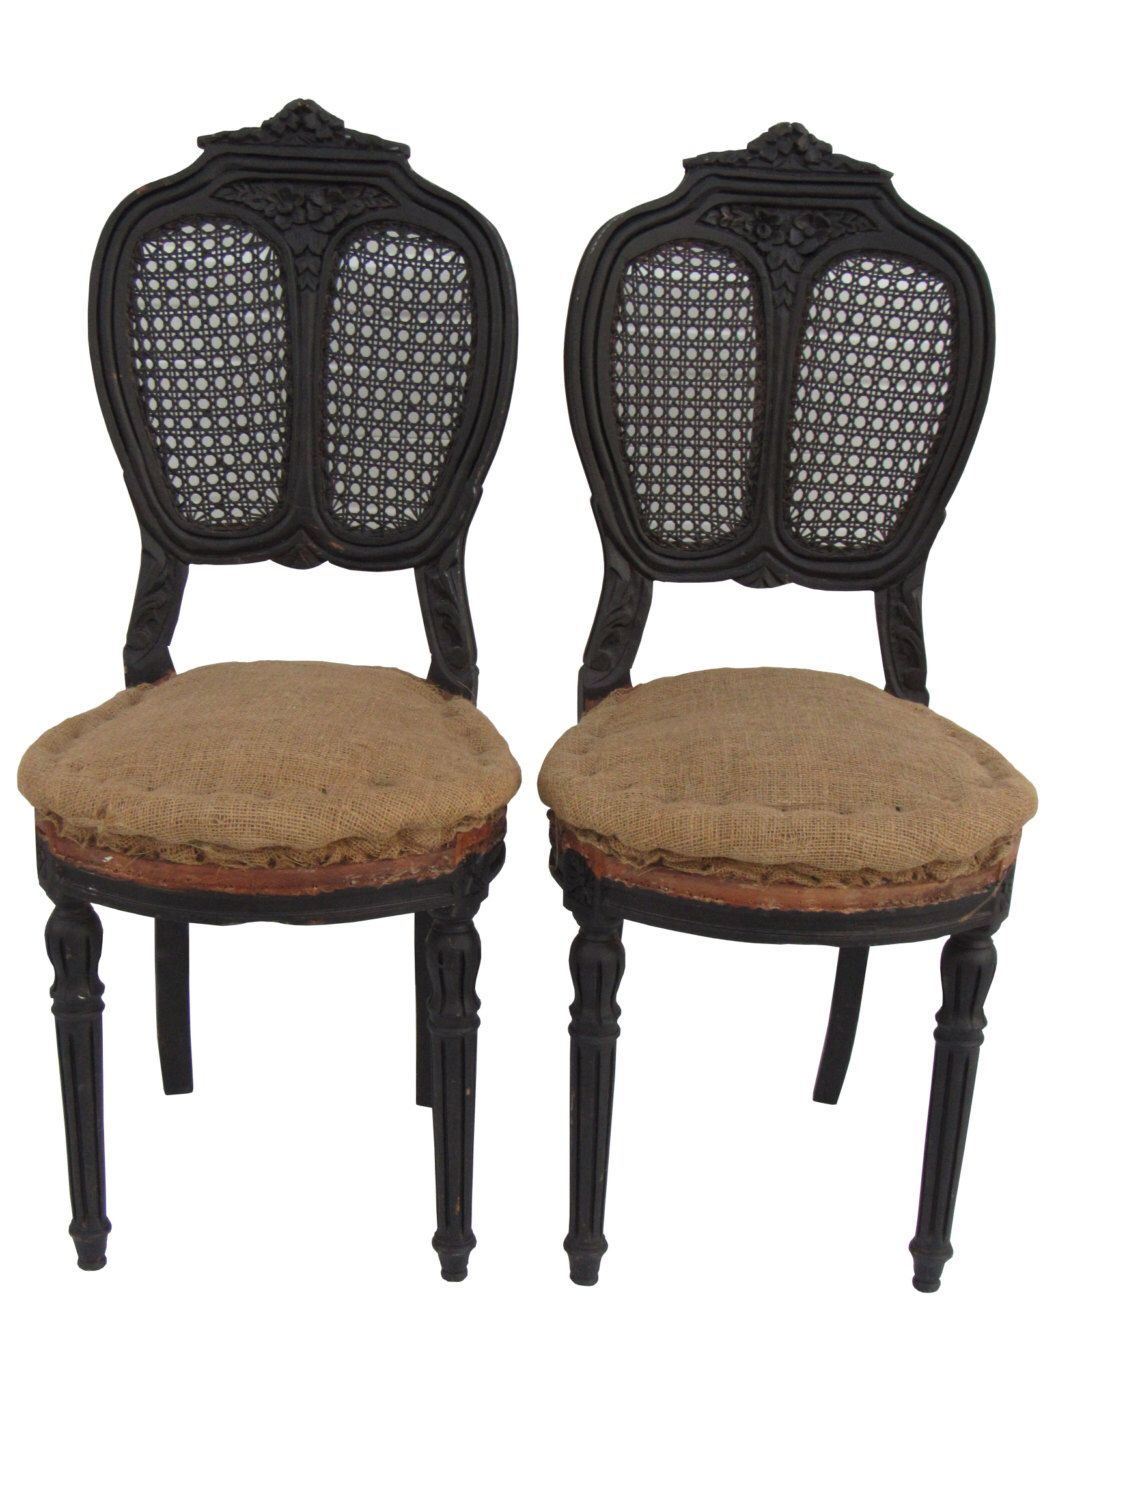 Antique Pair French Carved/Caned Chairs Antique French Chairs Paris  Apartment Chairs Deconstructed Chairs Upholstered